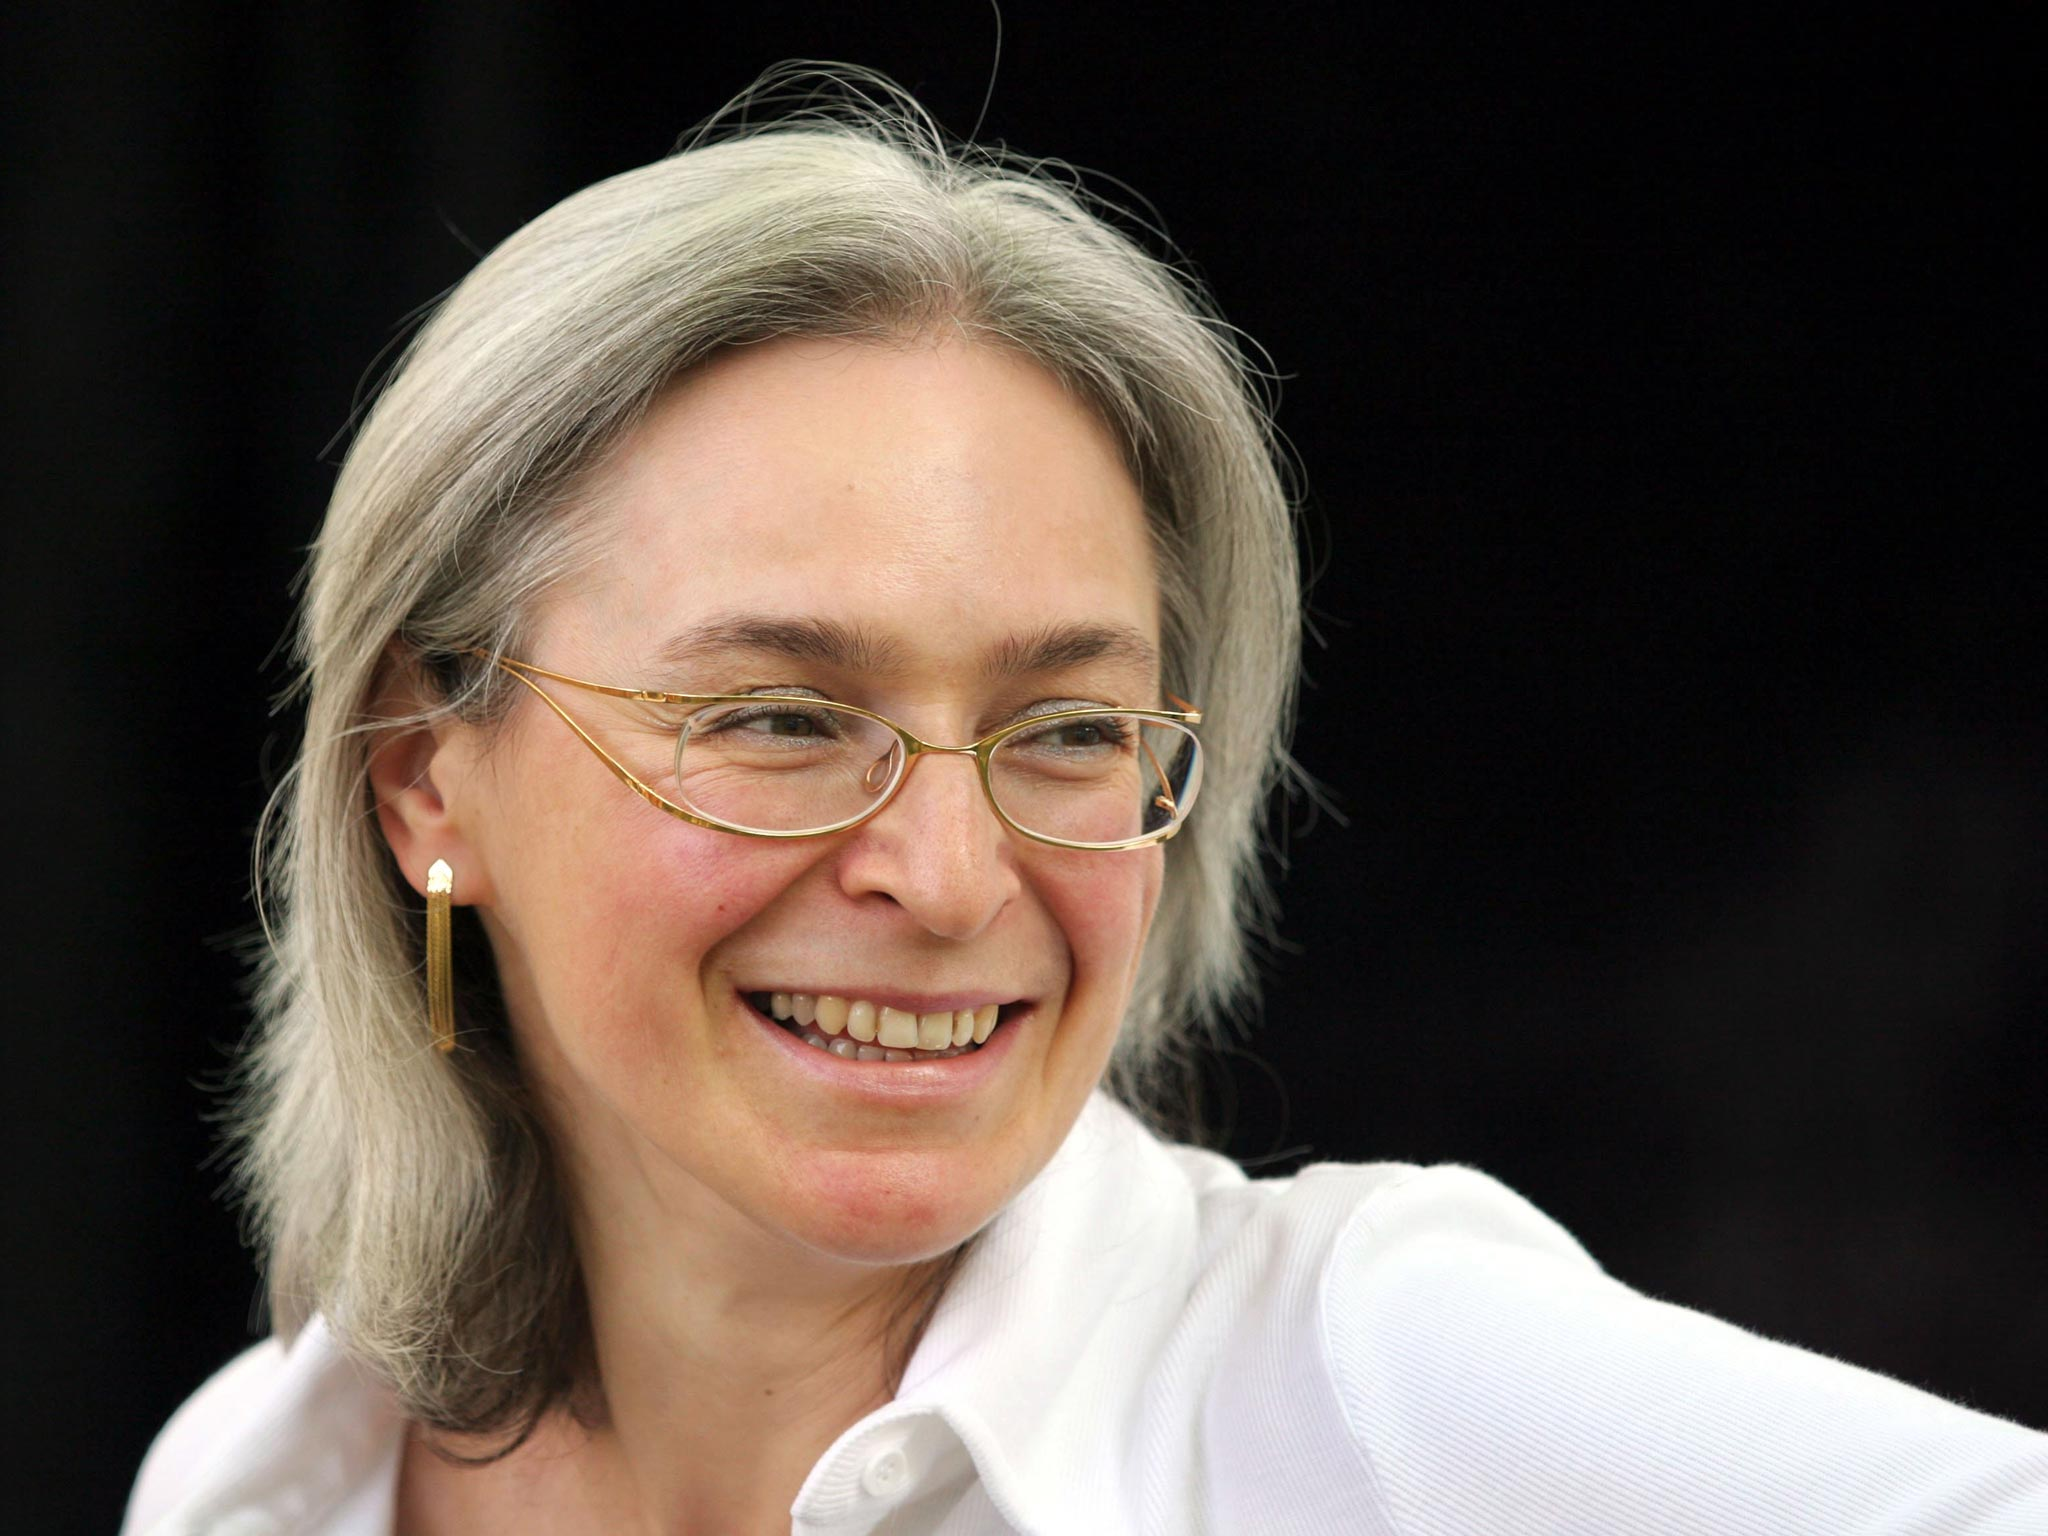 Anna Politkovskaya Who really did kill Russian journalist Anna Politkovskaya